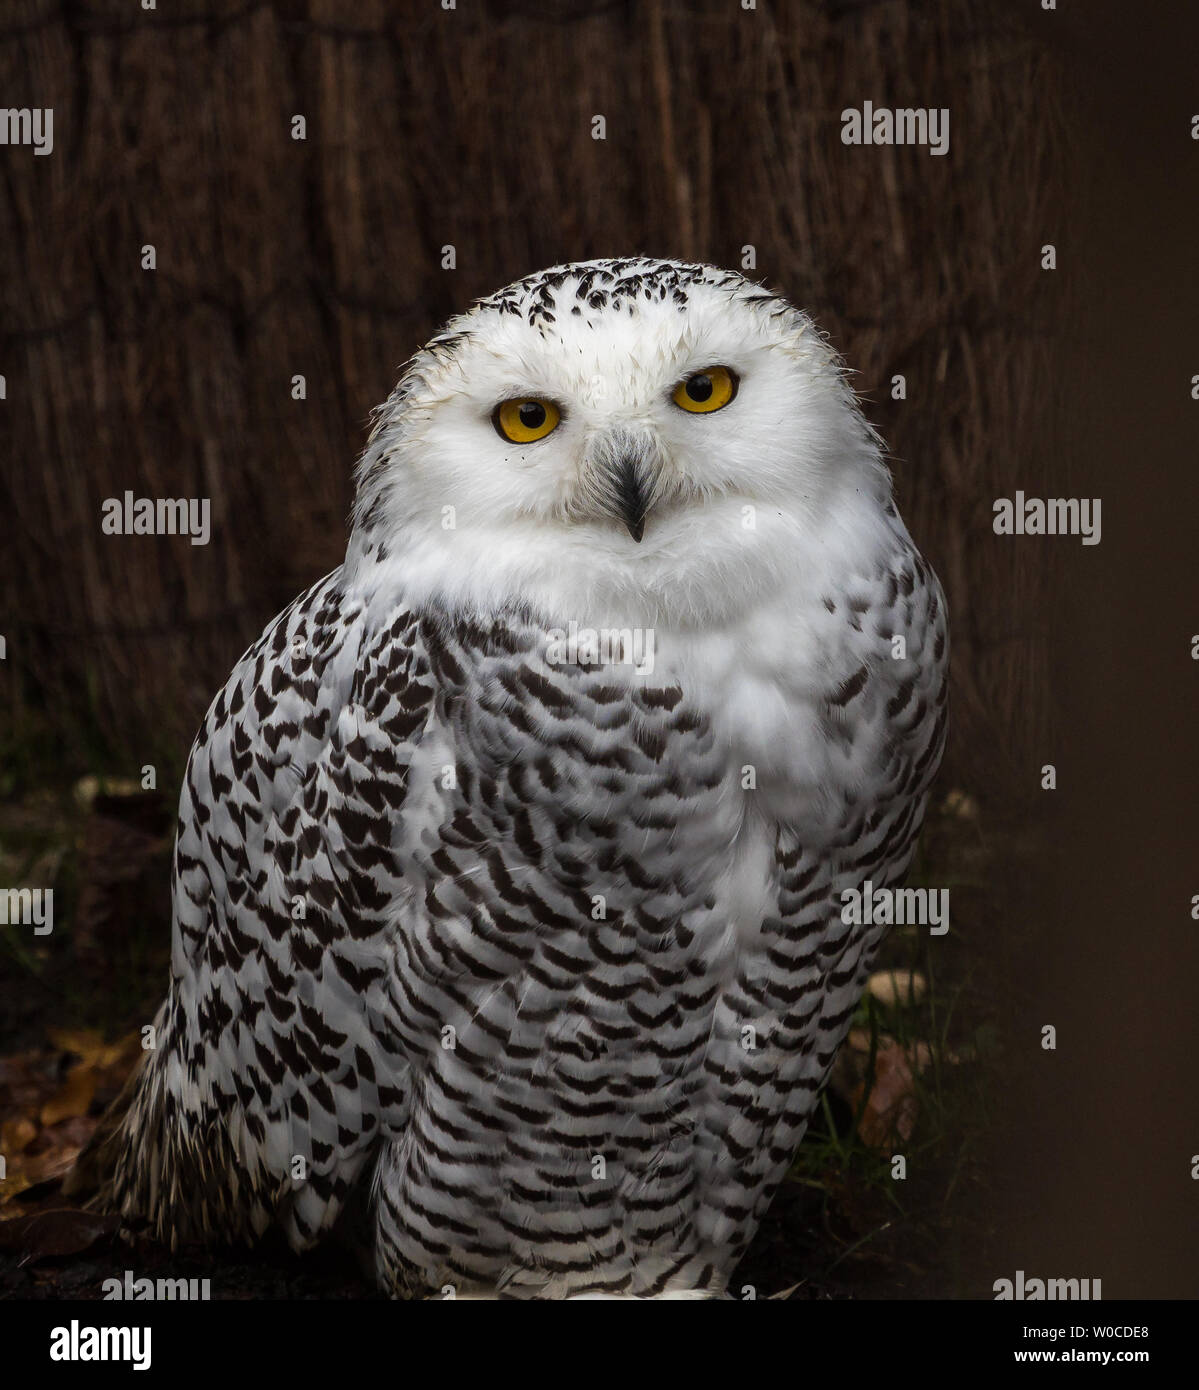 The Snowy Owl, Bubo scandiacus is a large, white owl of the typical owl family. Snowy owls are native to Arctic regions in North America and Eurasia. Stock Photo